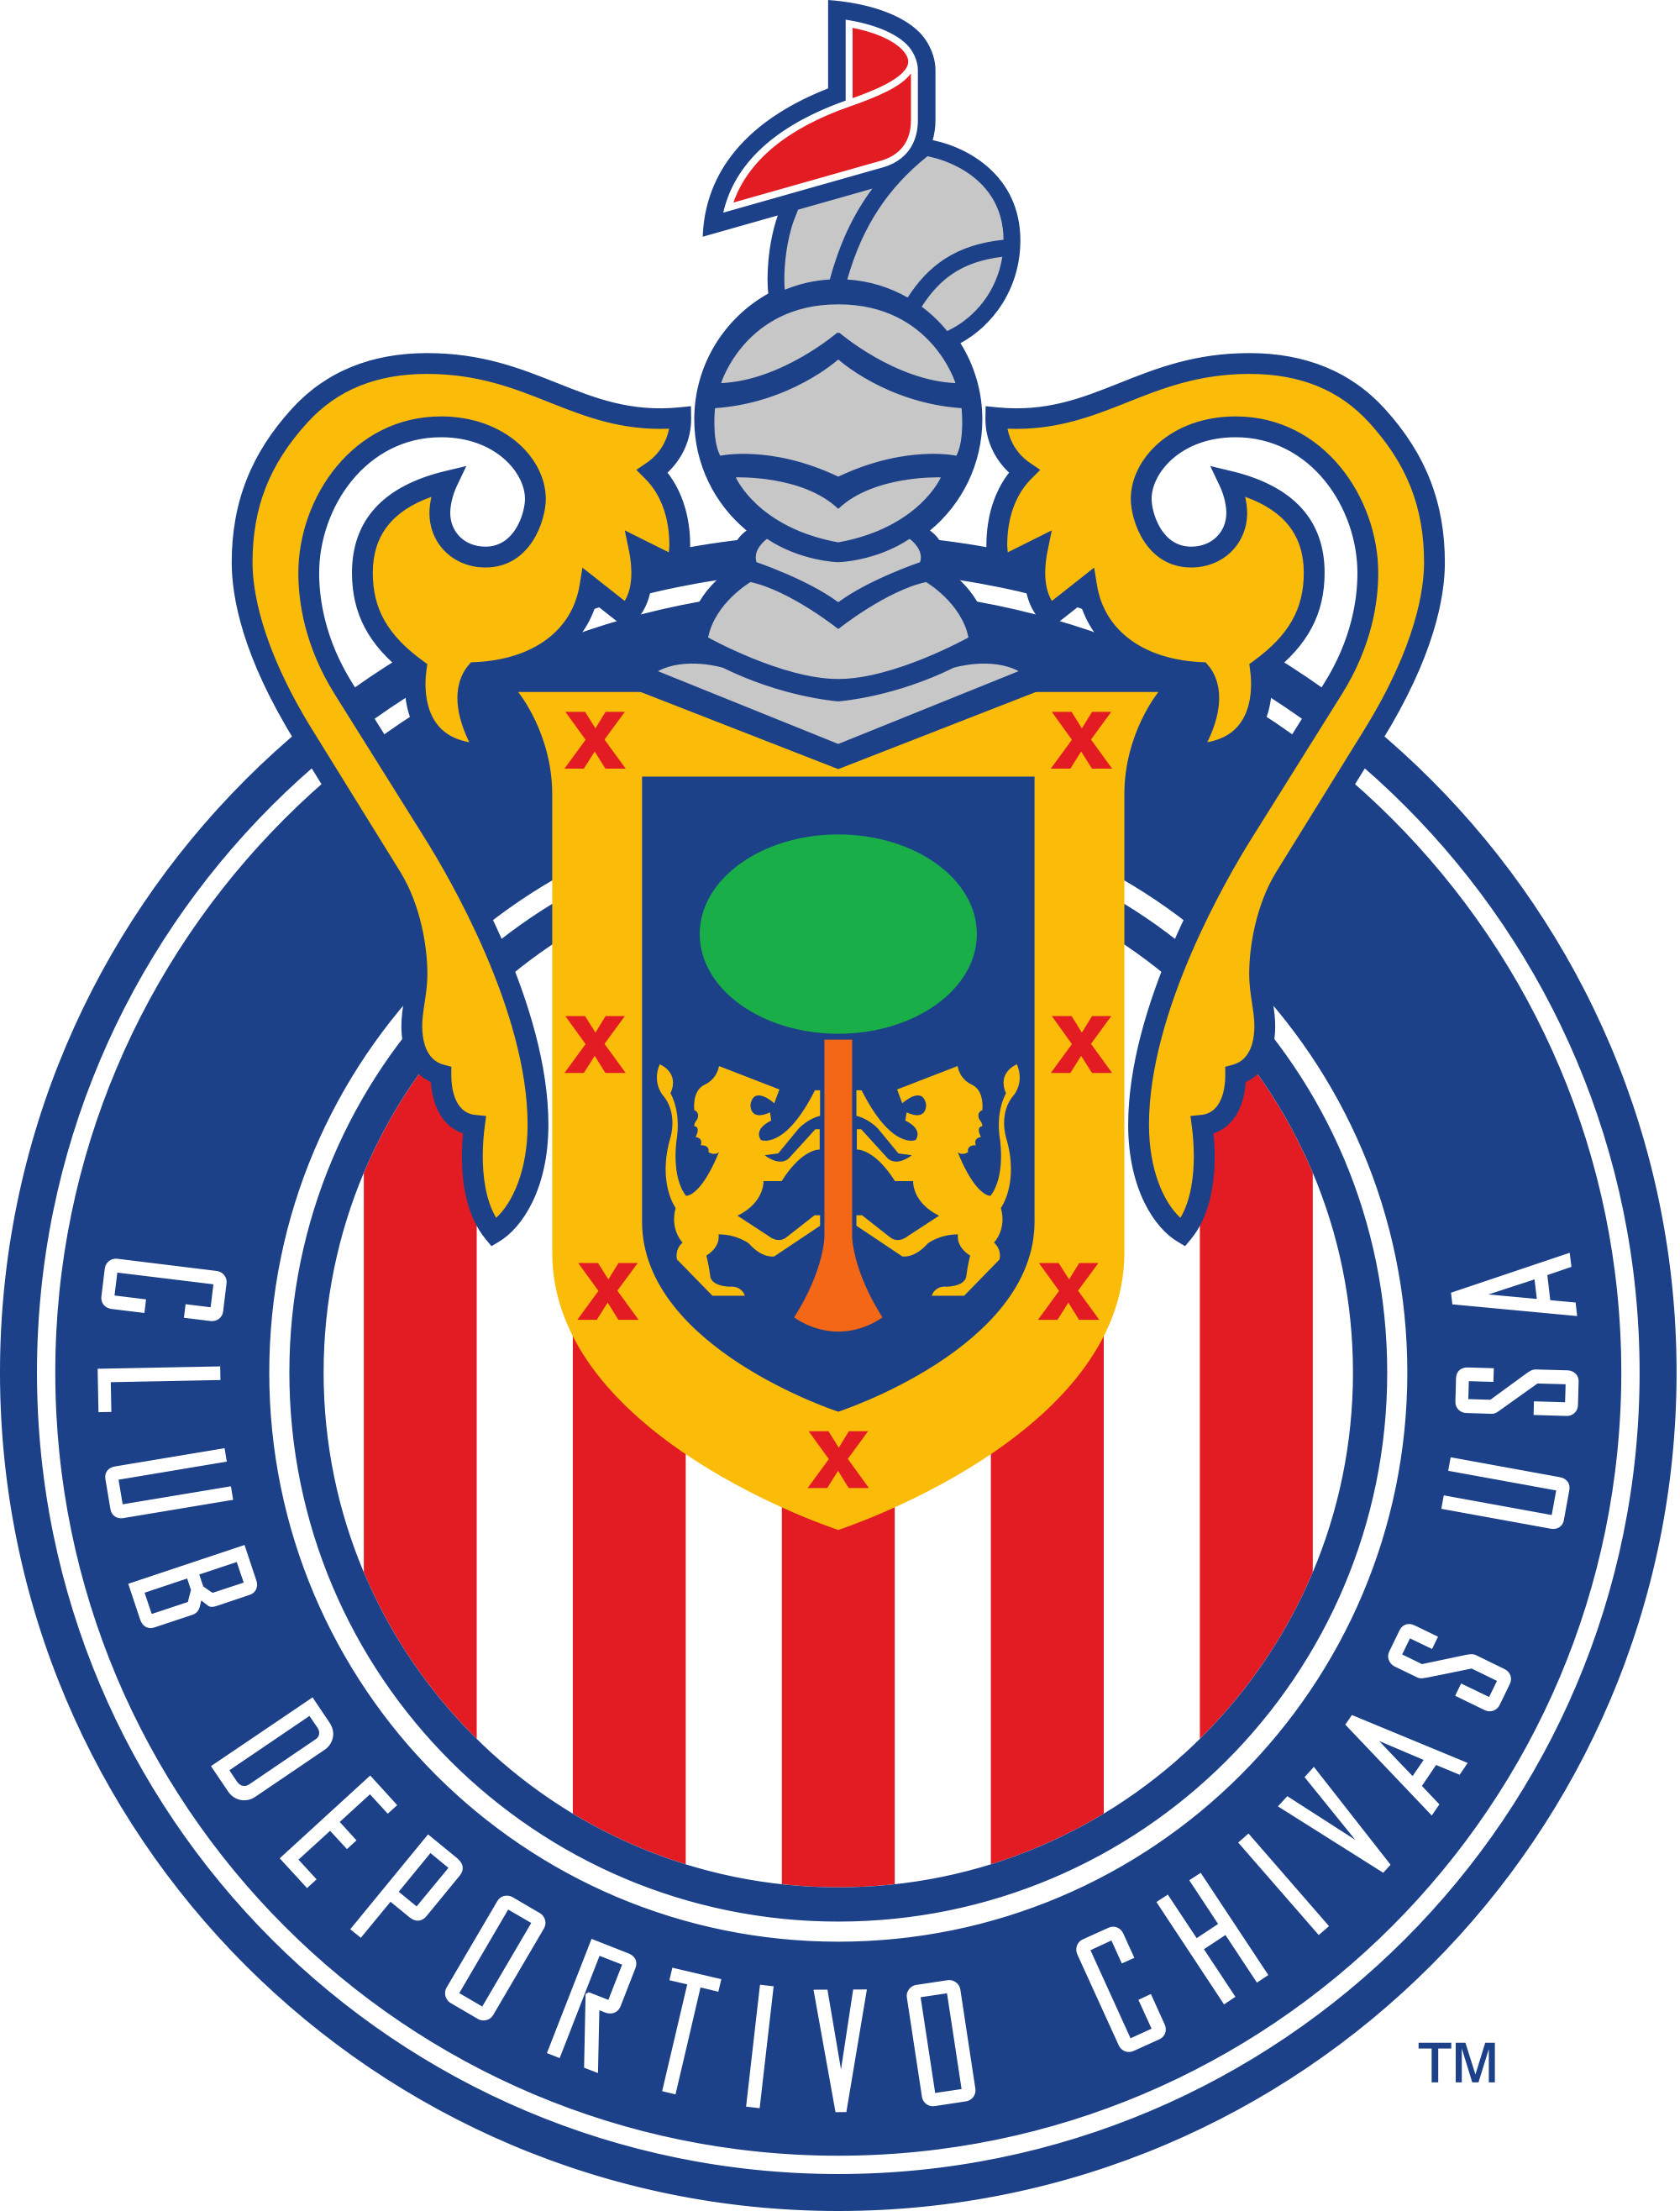 2000x2632 Sports fan gear for the Club Deportivo Chivas soccer fan. Bedding, game day  gear, decals, party supplies, gifts and other collectible sports  merchandise at ...